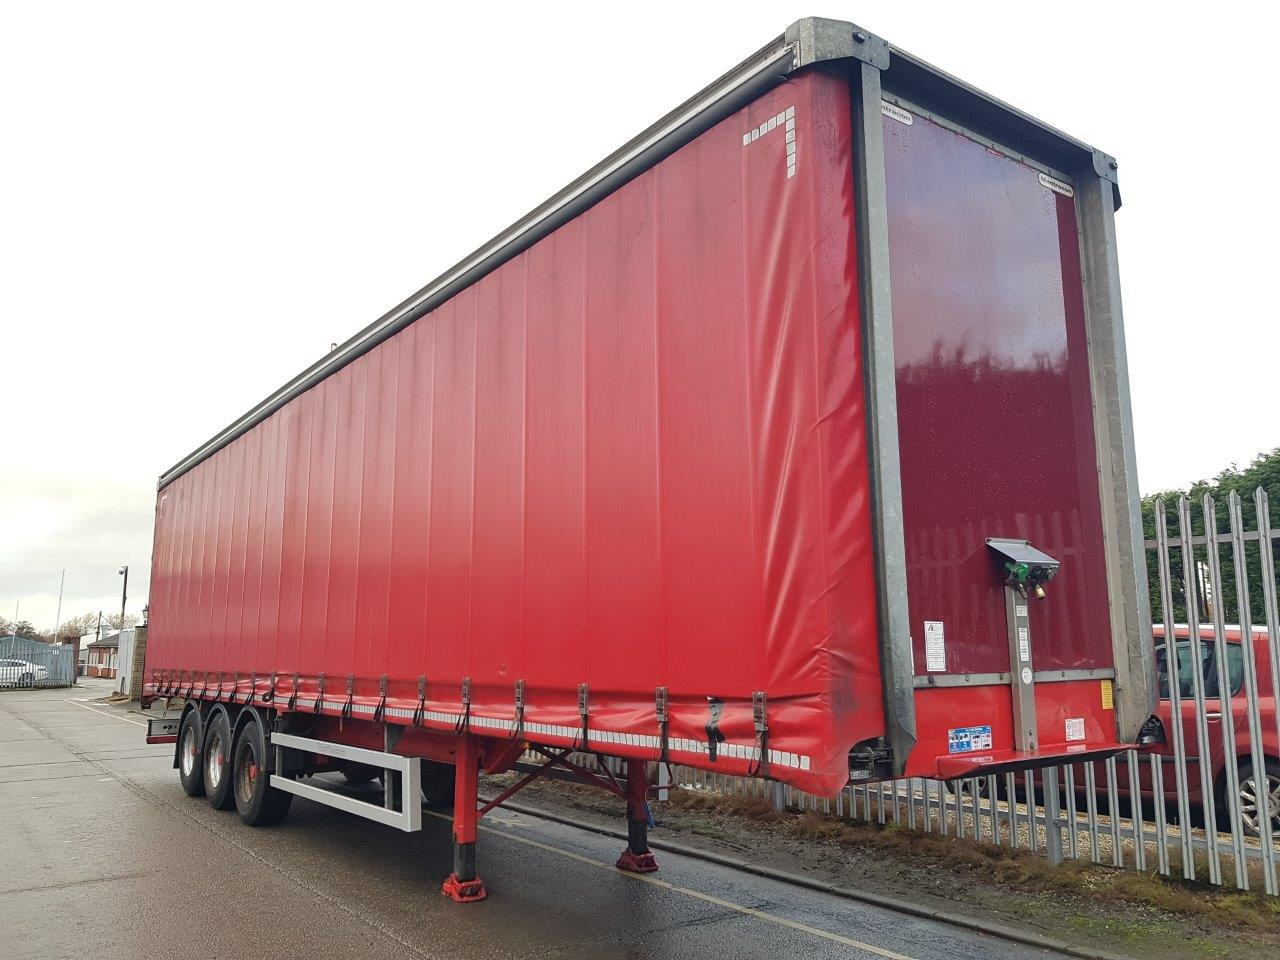 2015 Montracon 4.47M Curtainsiders. BPW drum brake axles, 2.96m side aperture, 2 sliding side posts per side, Internal straps, Wiza trans floor, raise lower valve, choice of 4.